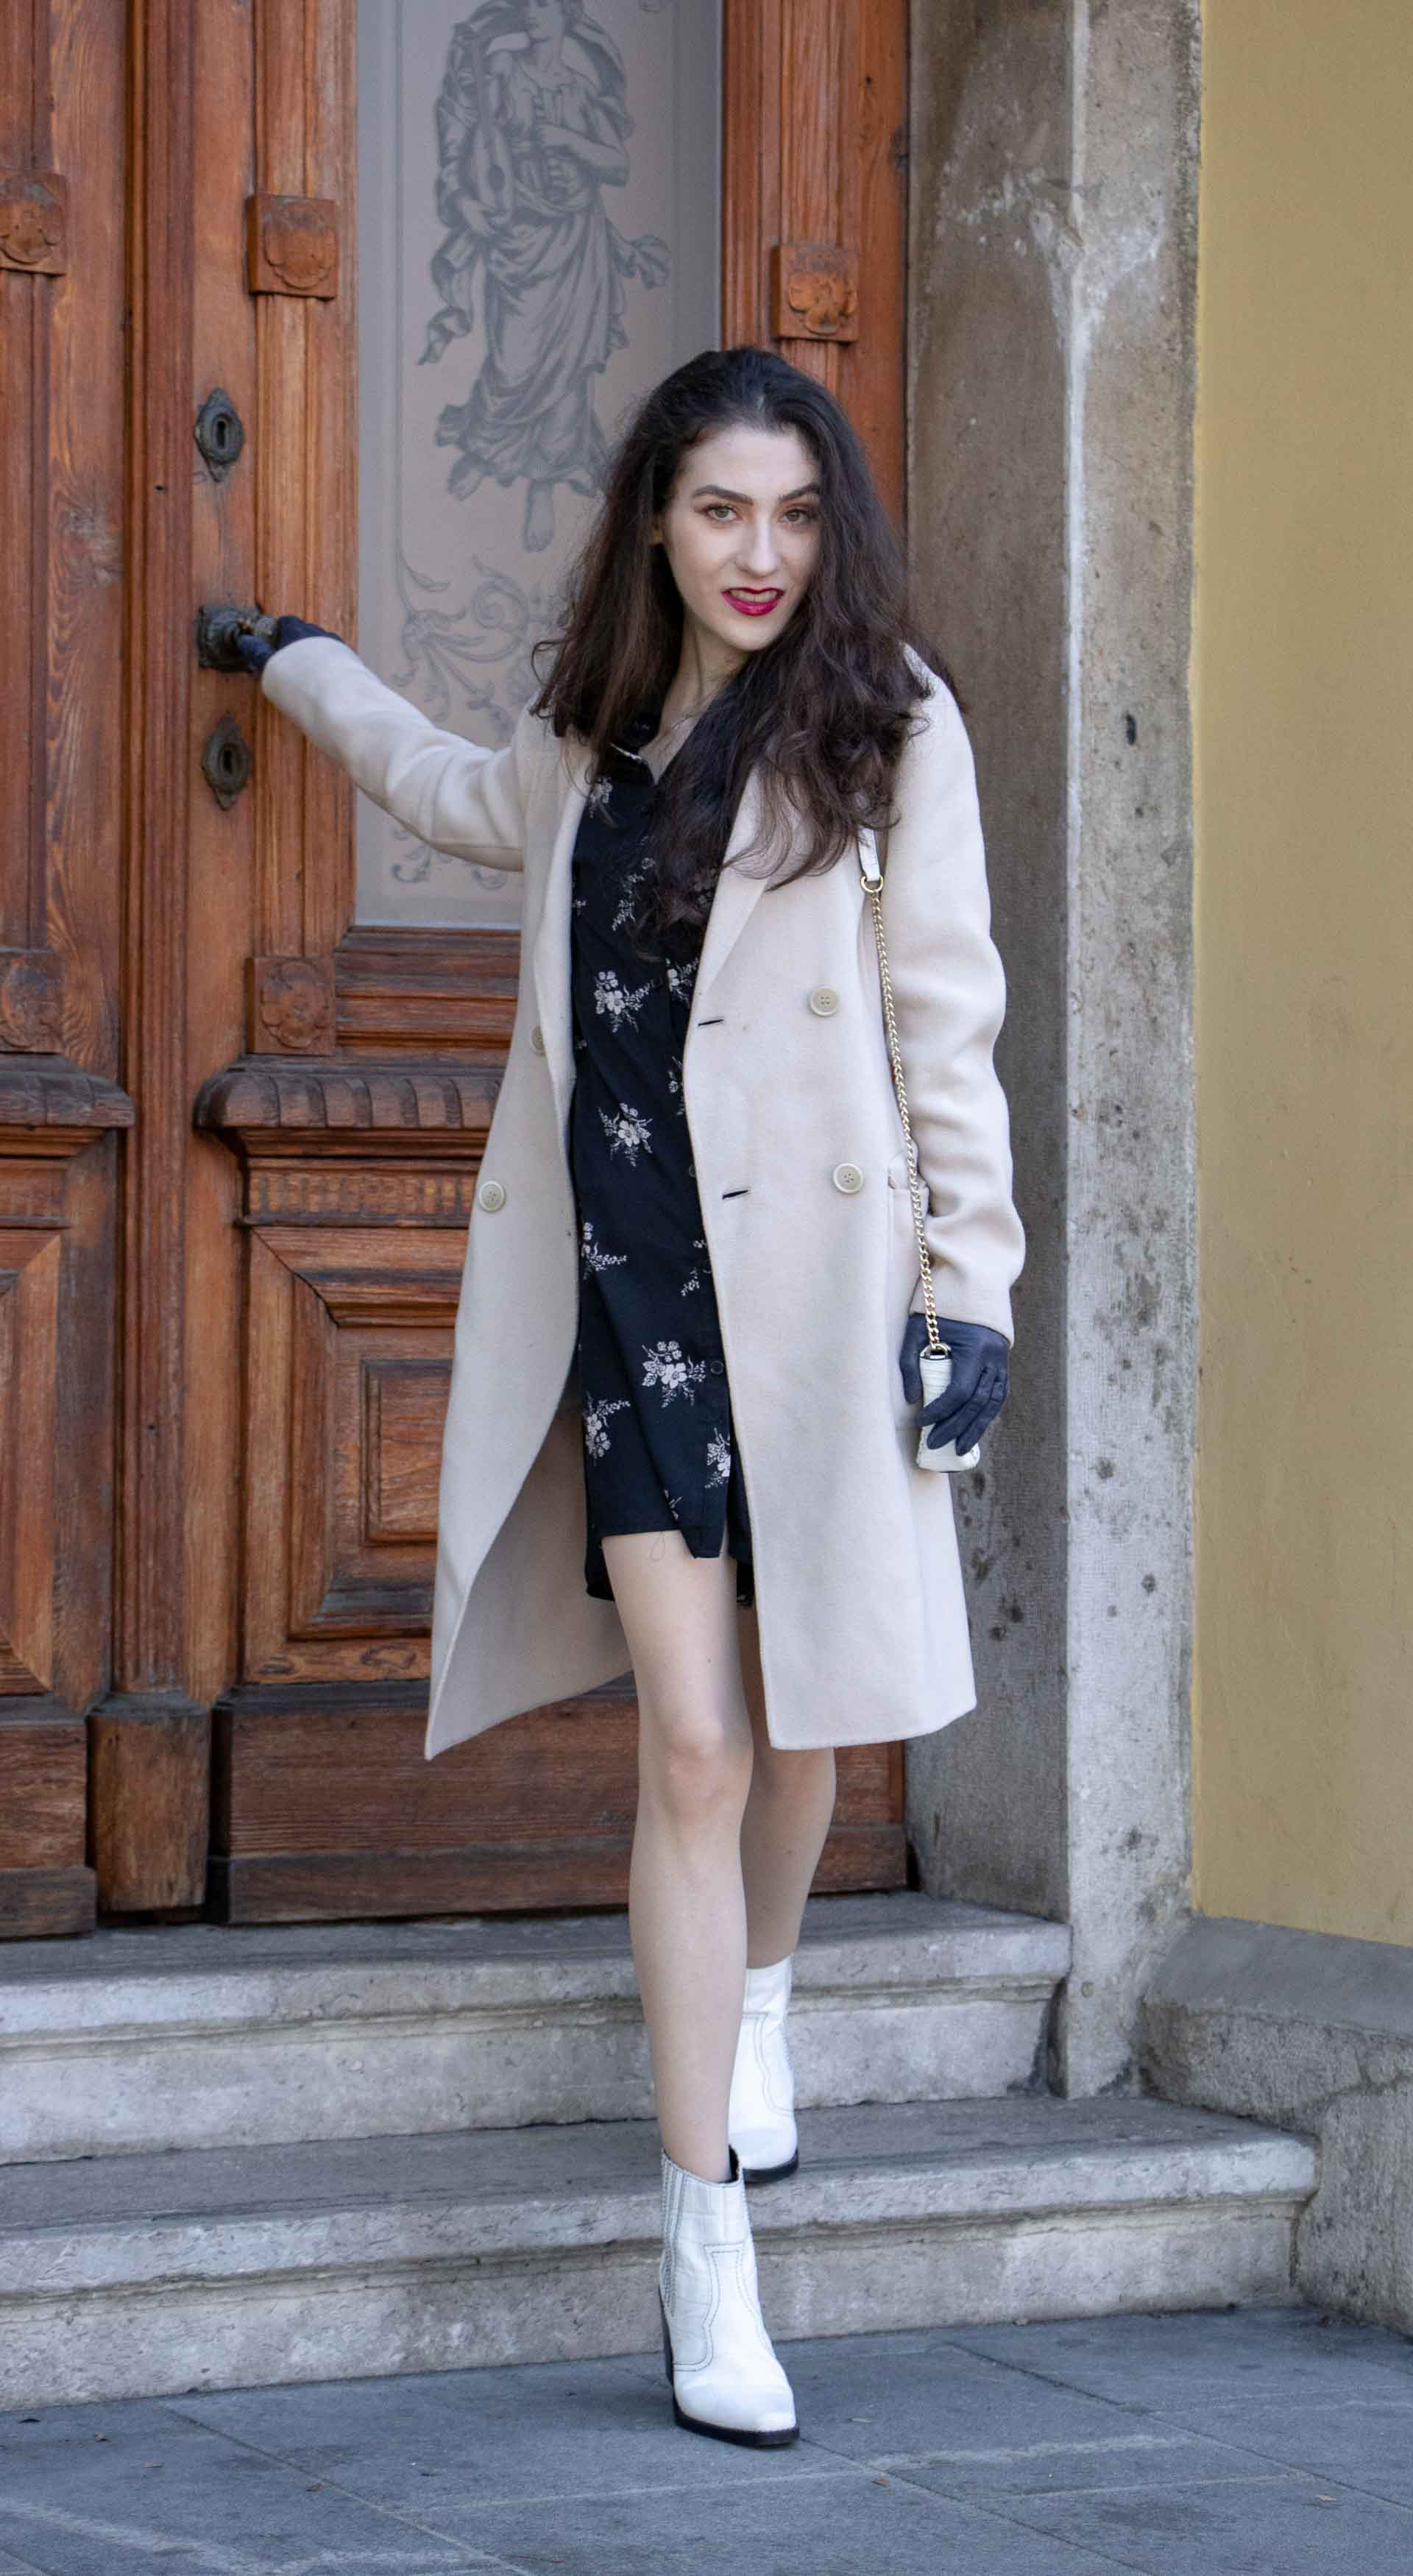 Beautiful Slovenian Fashion Blogger Veronika Lipar of Brunette from Wall wearing dark floral shirtdress with white Ganni cowboy boots, white chain shoulder bag in autumn leaving home closing the door